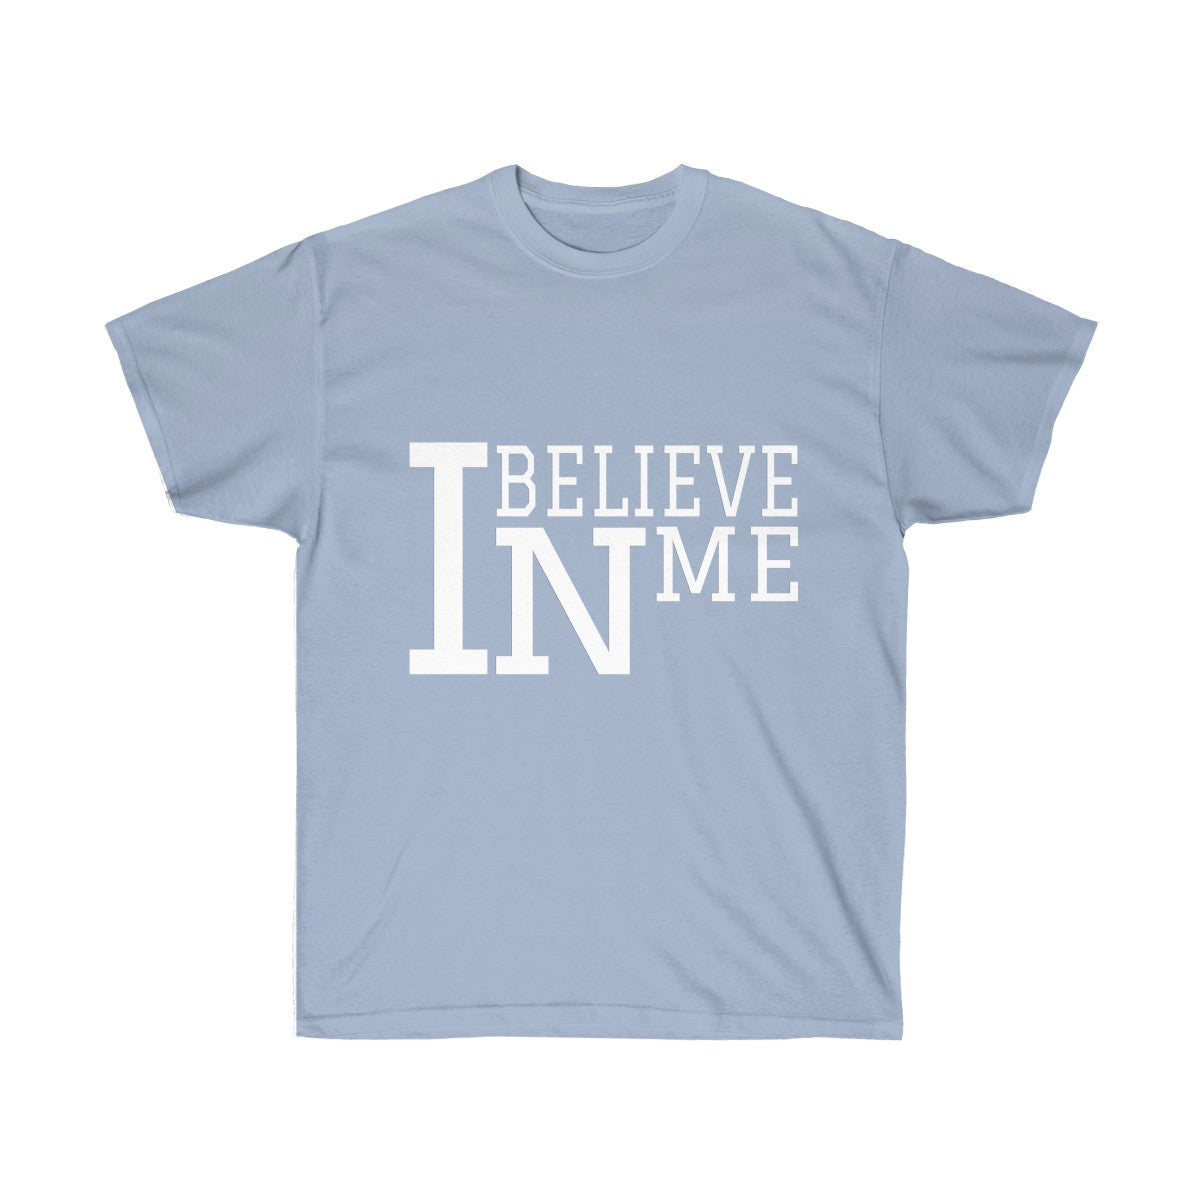 """I Believe In Me"" Unisex Ultra Cotton Tee"